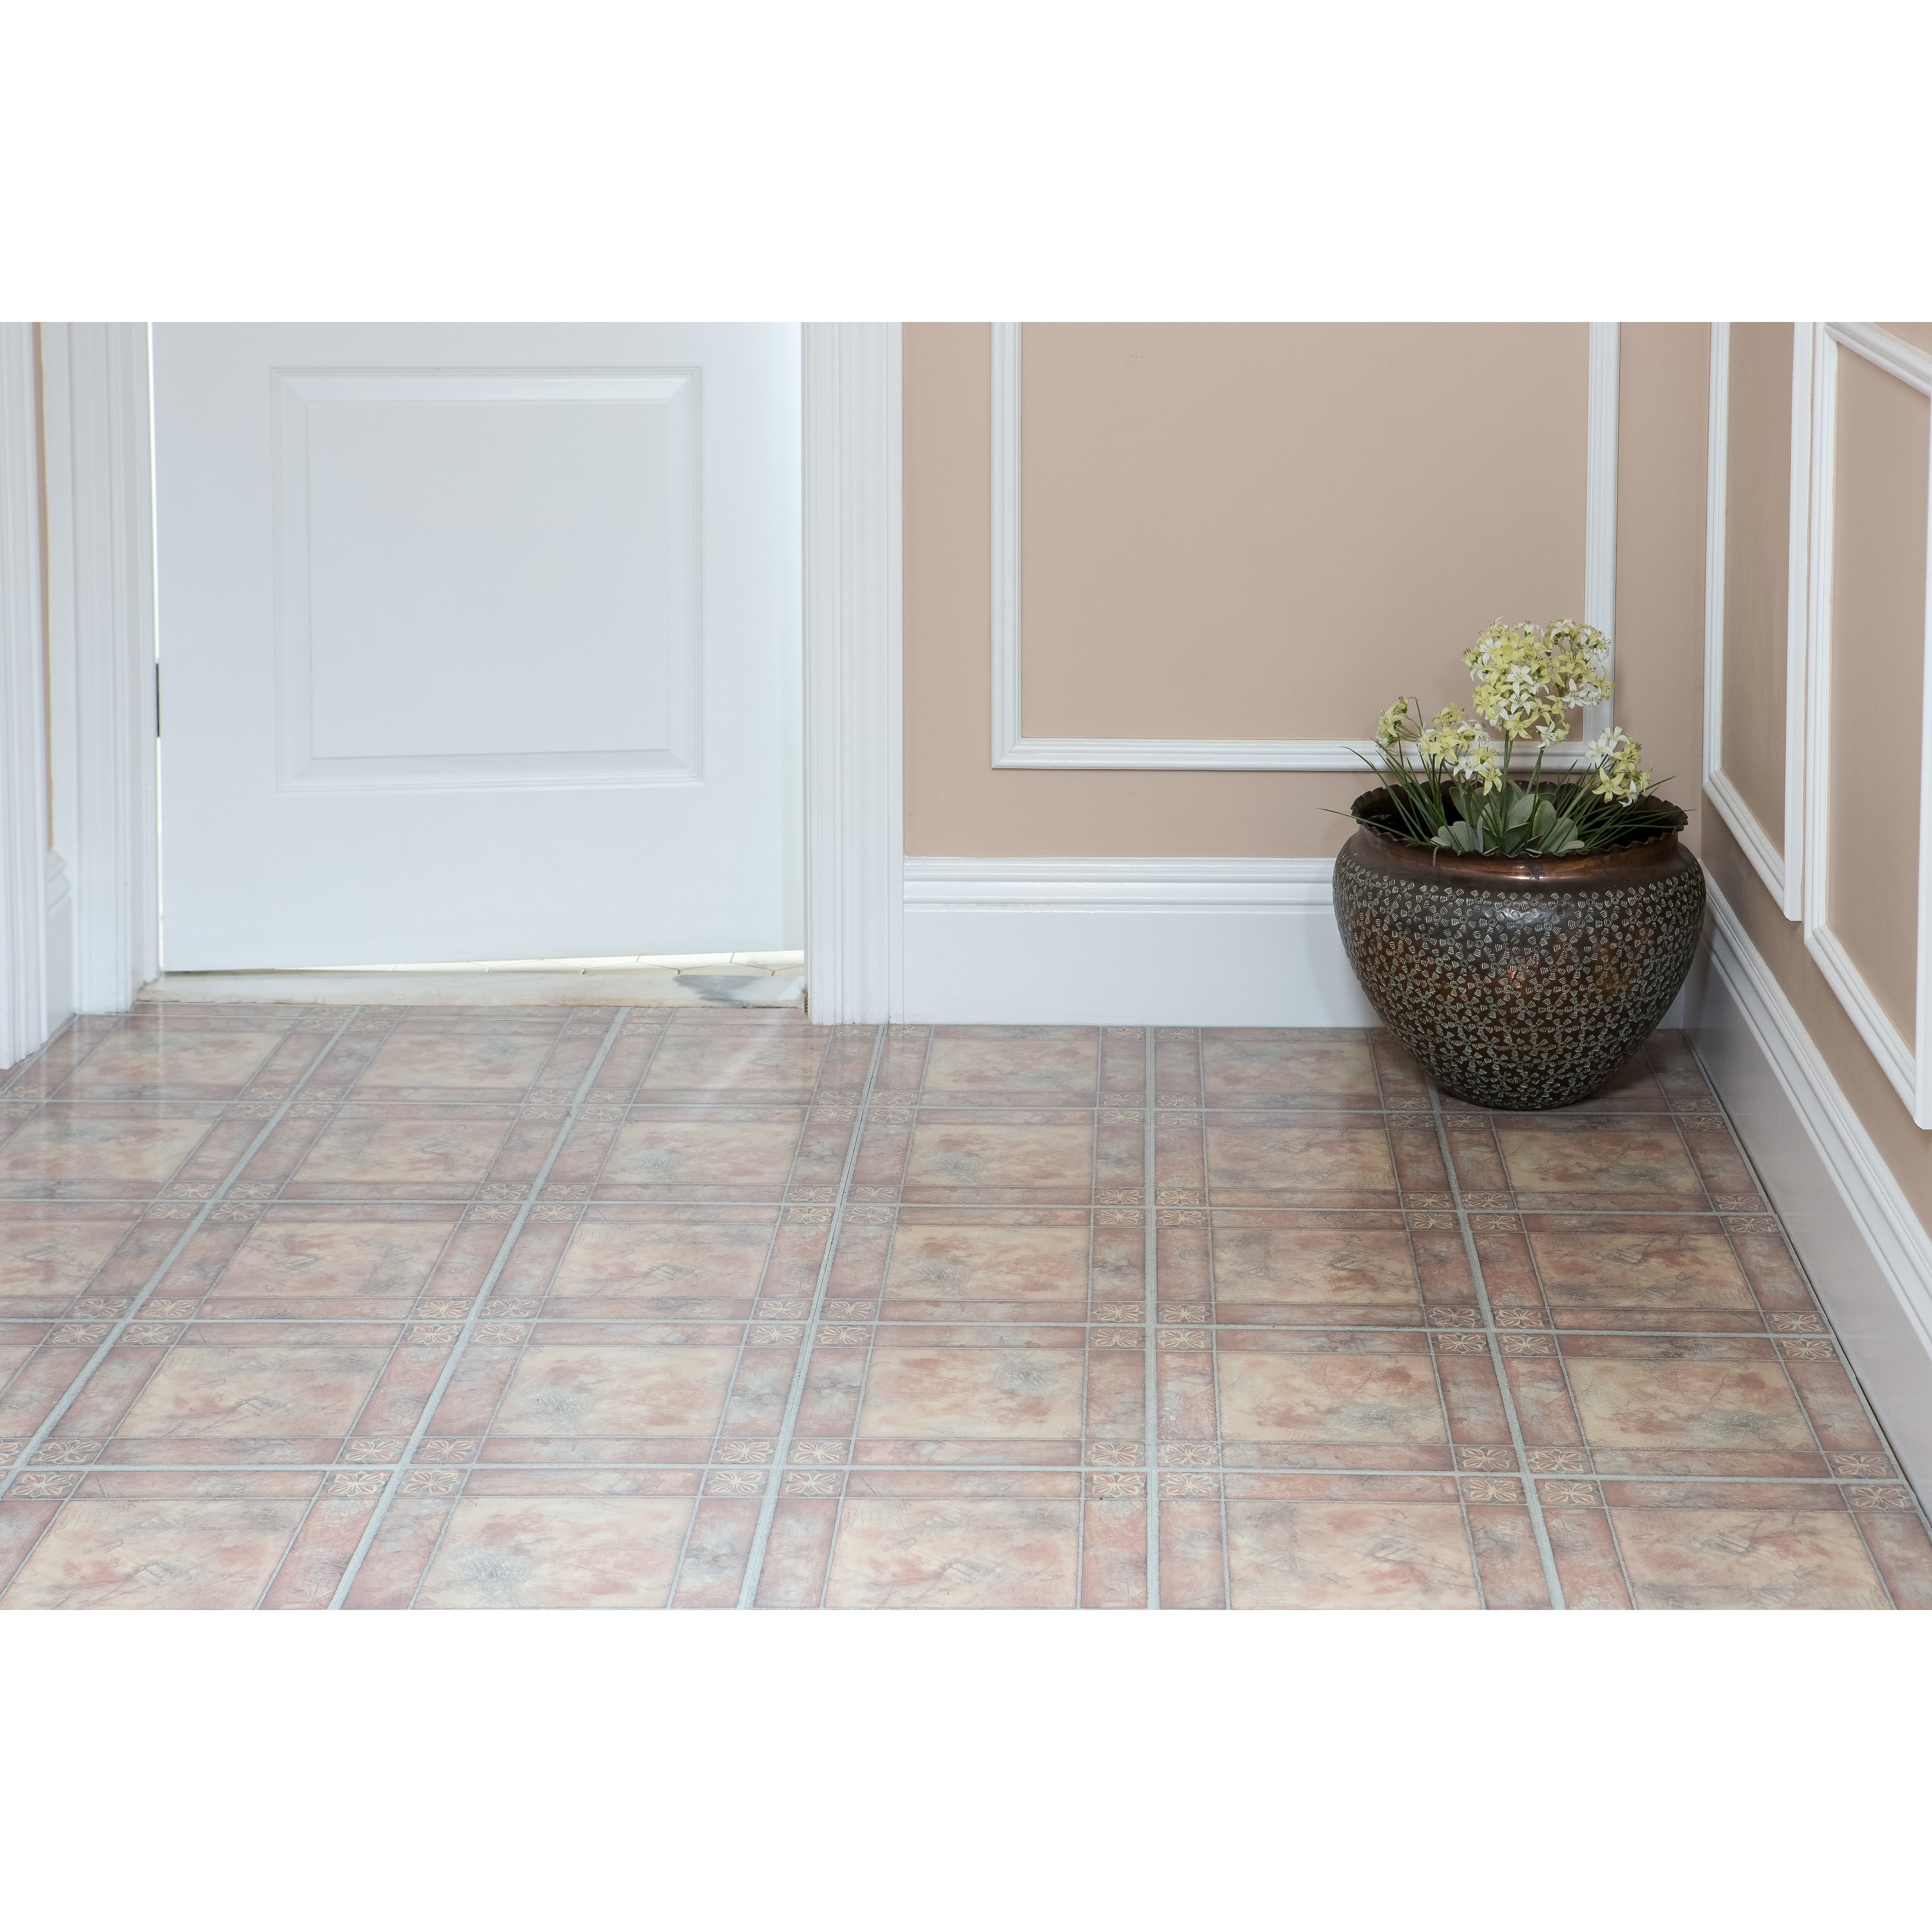 Magnificent 12 Ceramic Tile Thin 12X12 Cork Floor Tiles Clean 12X24 Tile Floor 13X13 Floor Tile Young 2 Inch Ceramic Tile Gray24X24 Ceiling Tiles Cheap Peel And Stick Vinyl Flooring Discount Pricing Nexus Wholesale